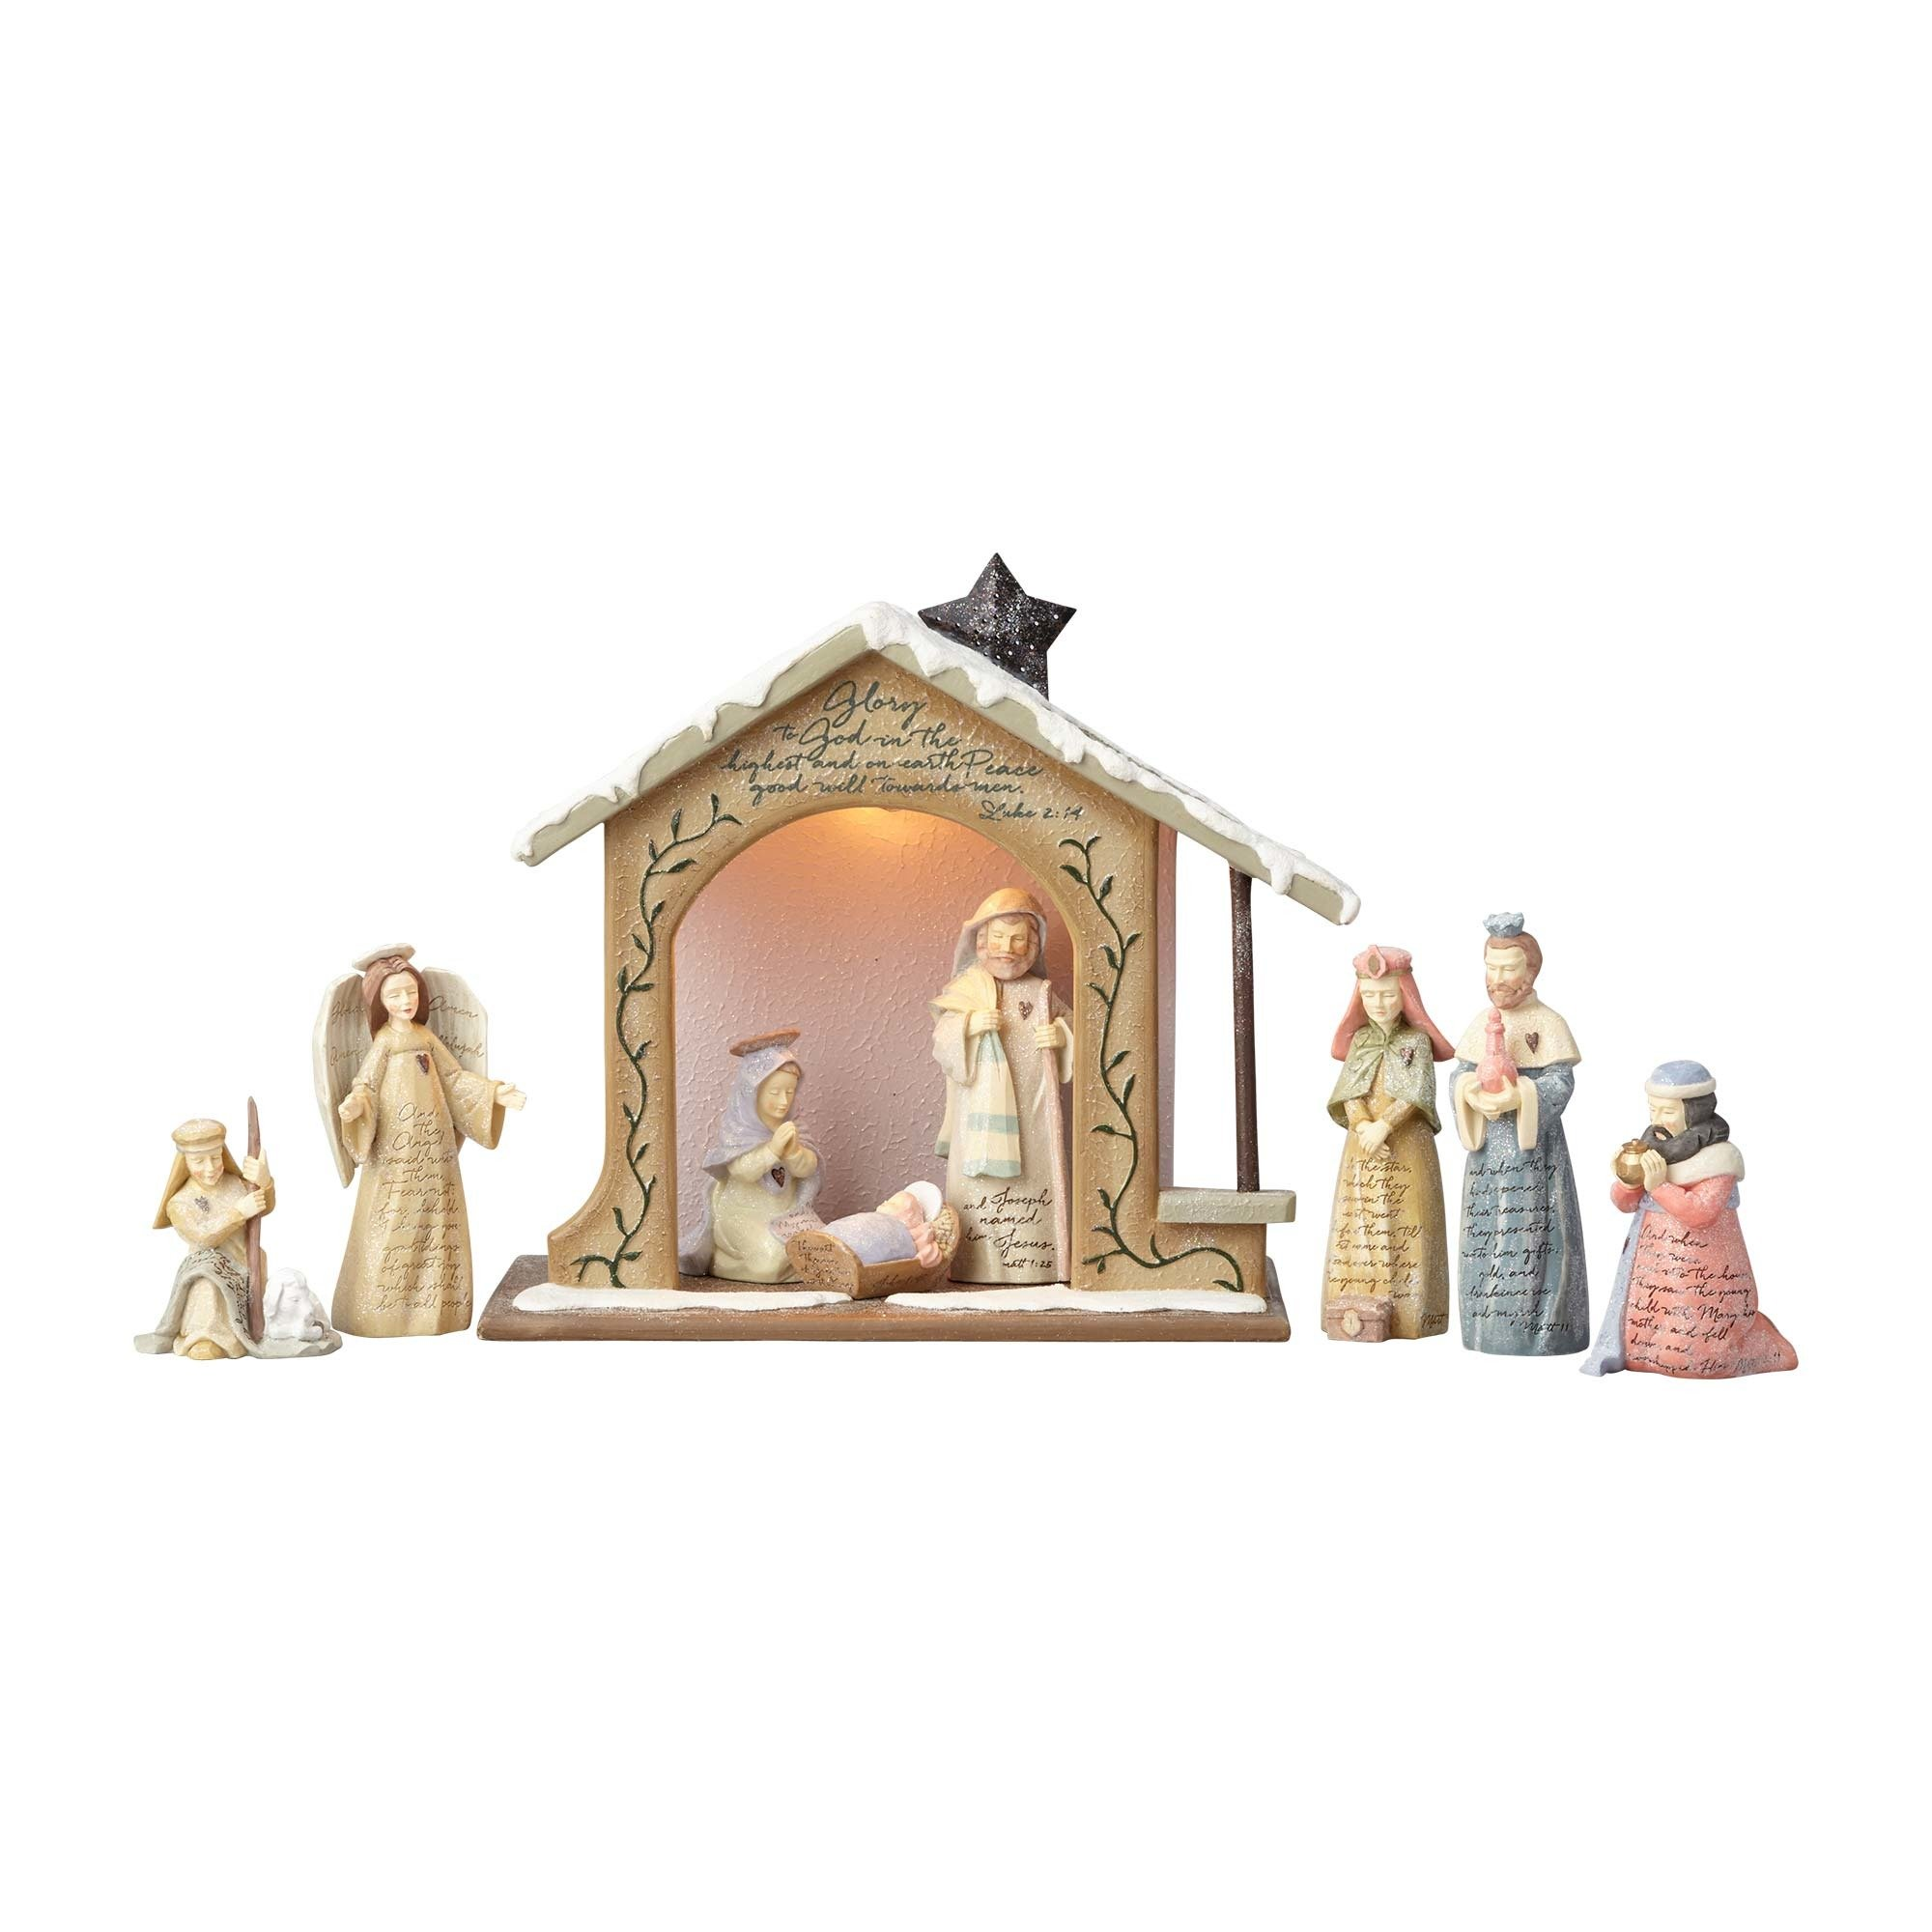 Foundations Nativity Set with Stone Resin Figurines, Set of 9